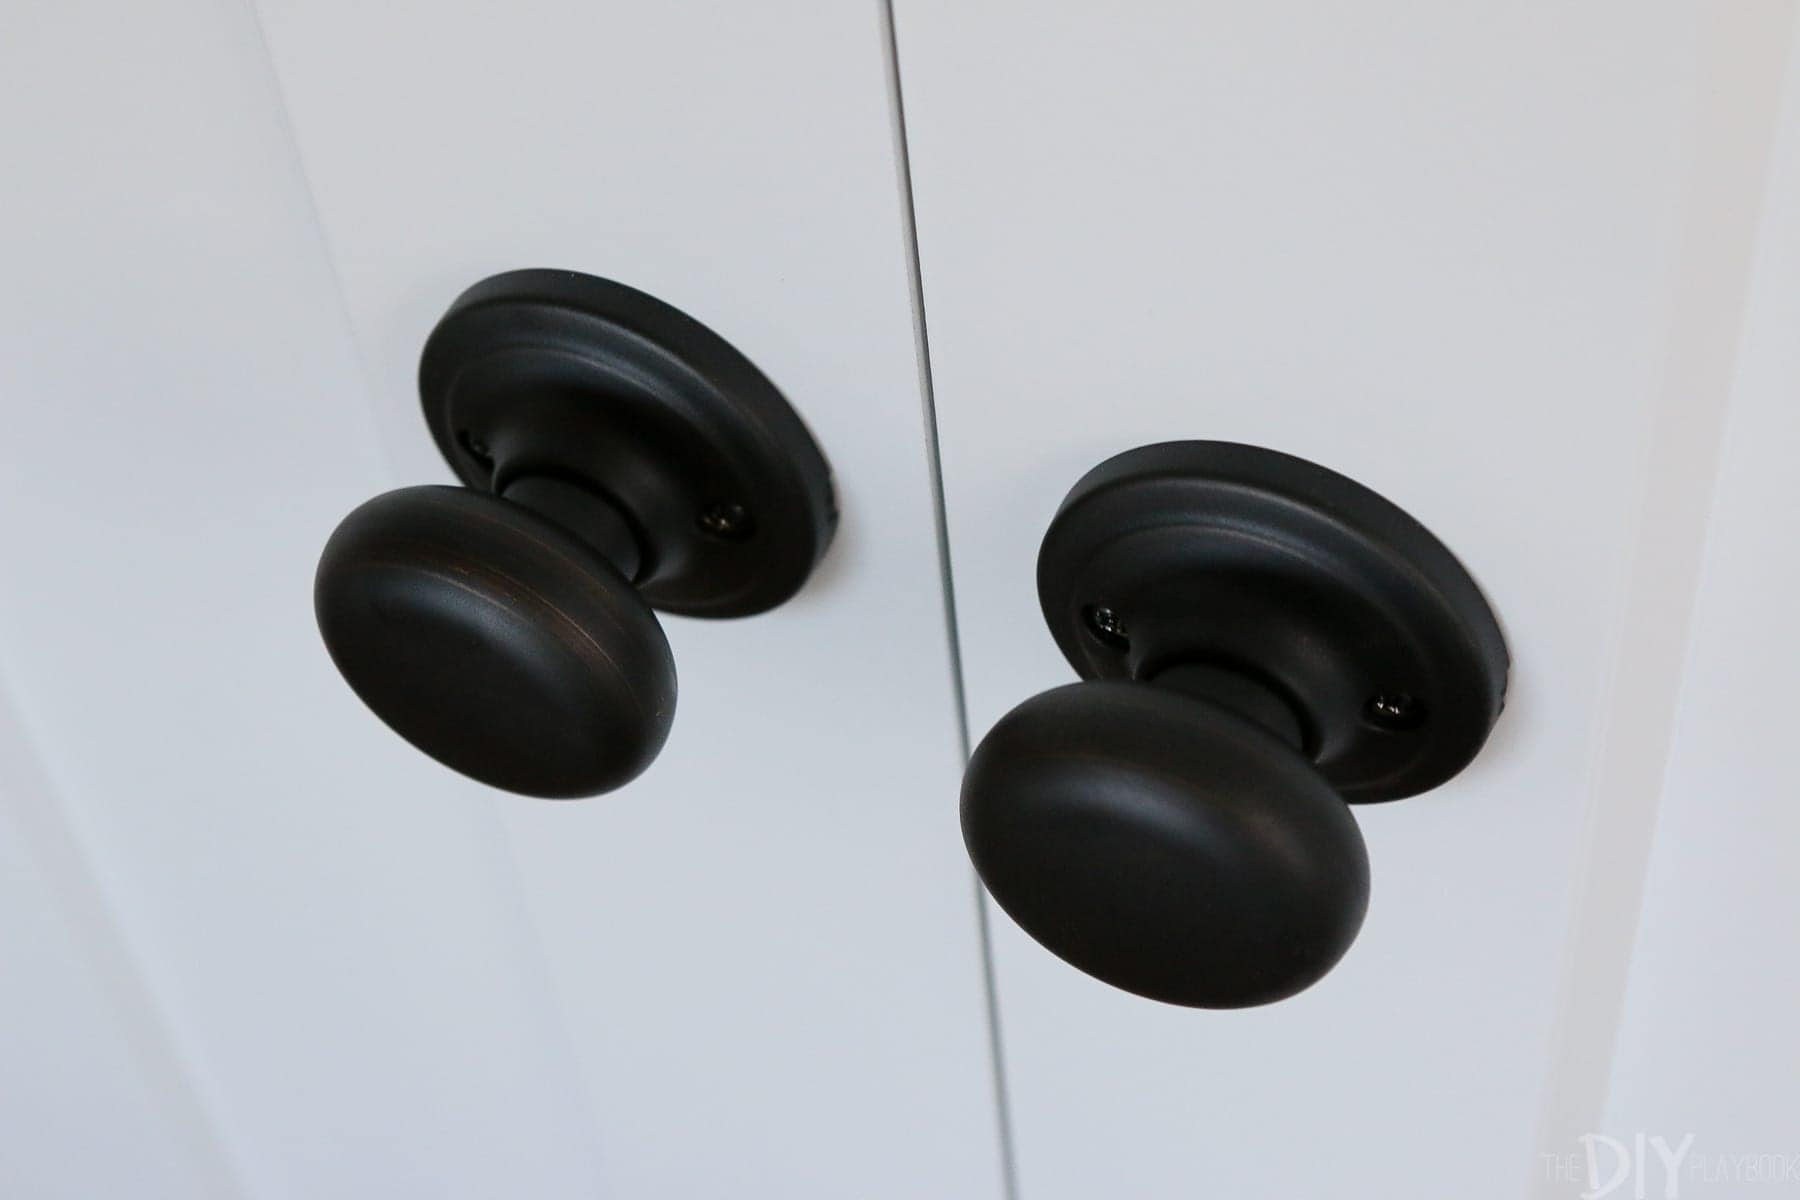 The hardware on the dummy doors matches the rest of the doors.